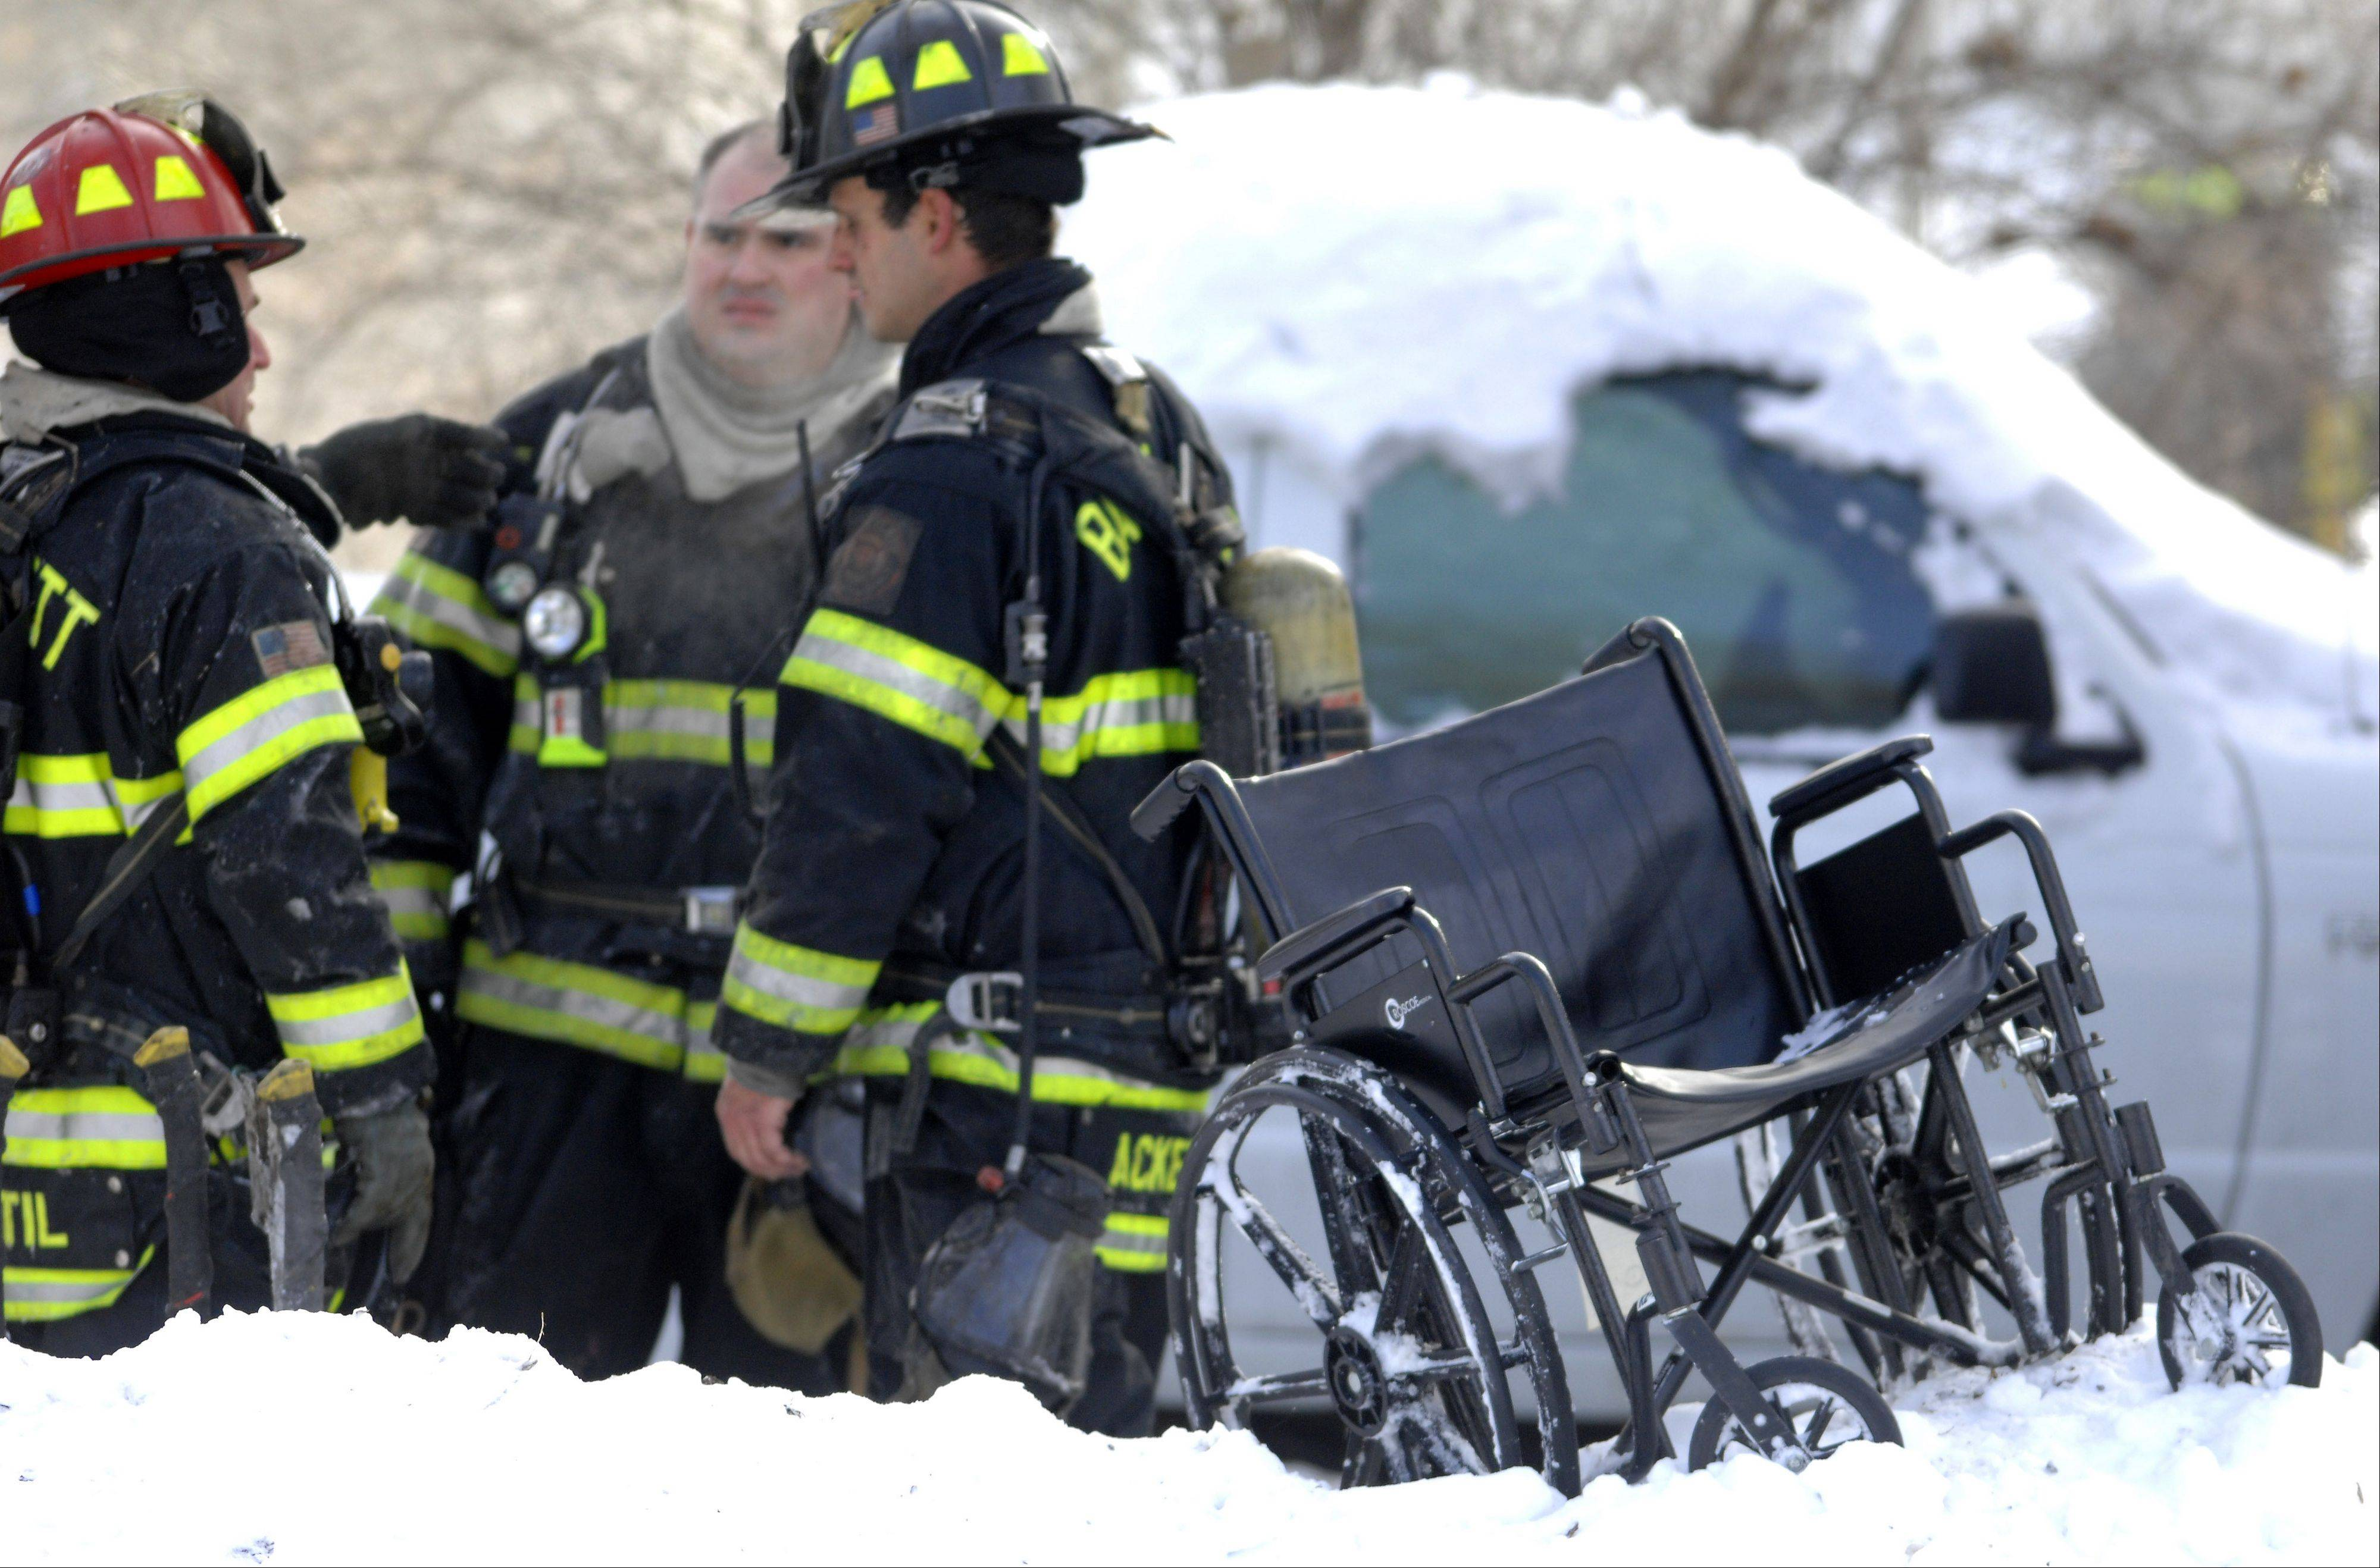 3 fatal suburban fires show precautions the disabled, immobile must take